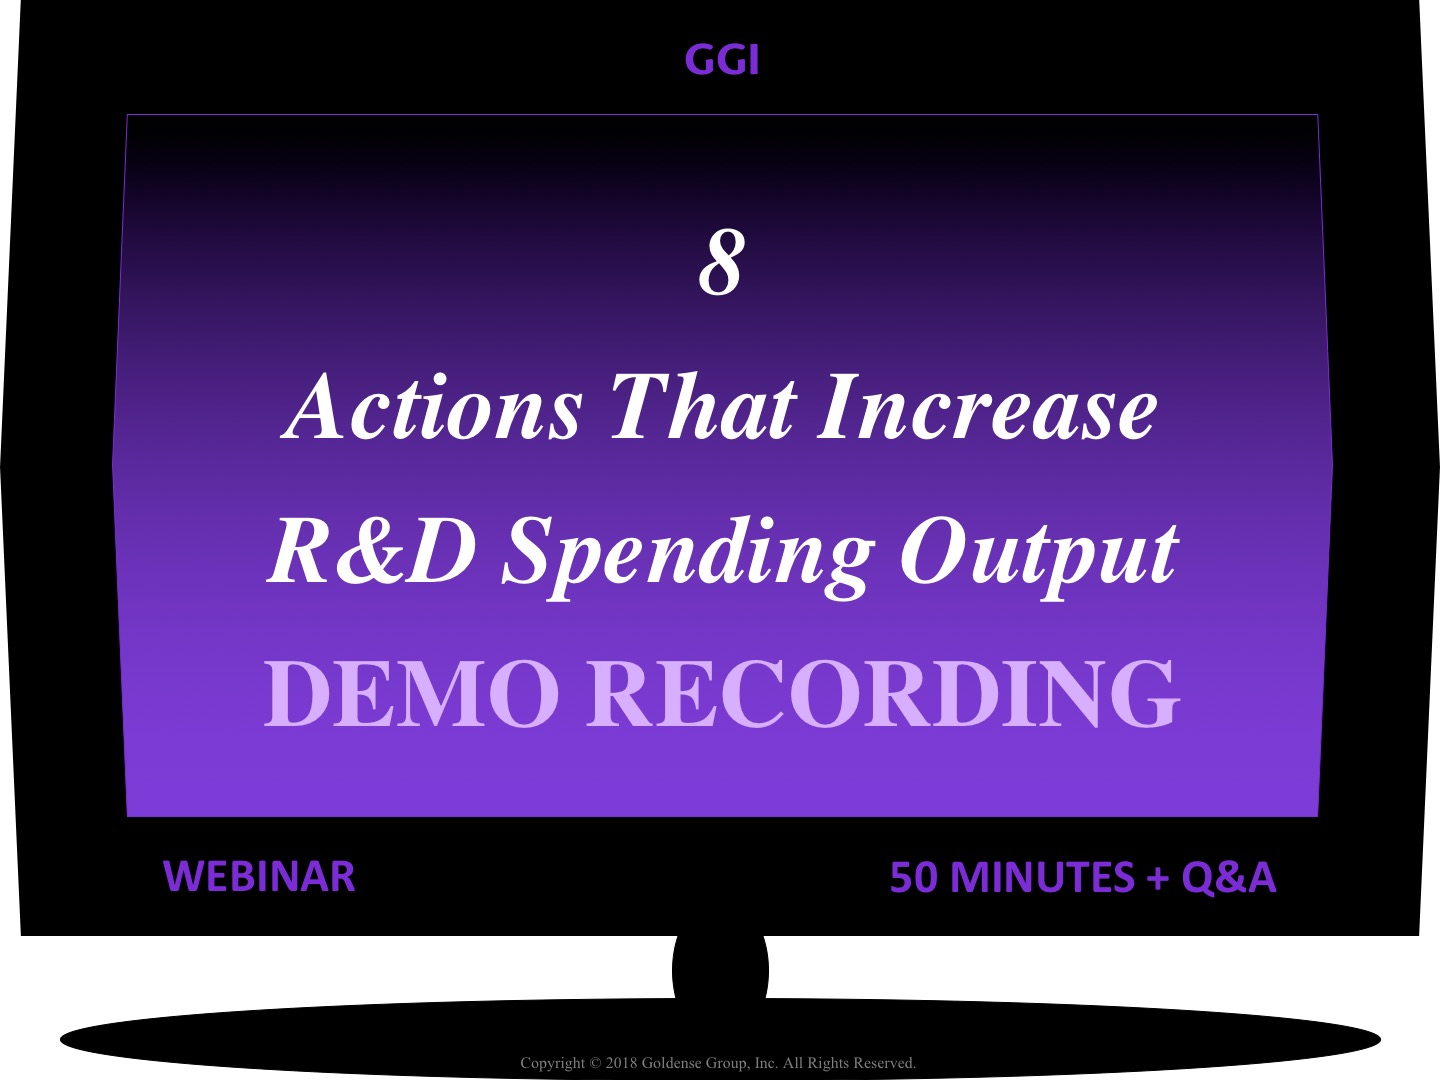 8 Actions That Increase R&D Spending Output Webinar